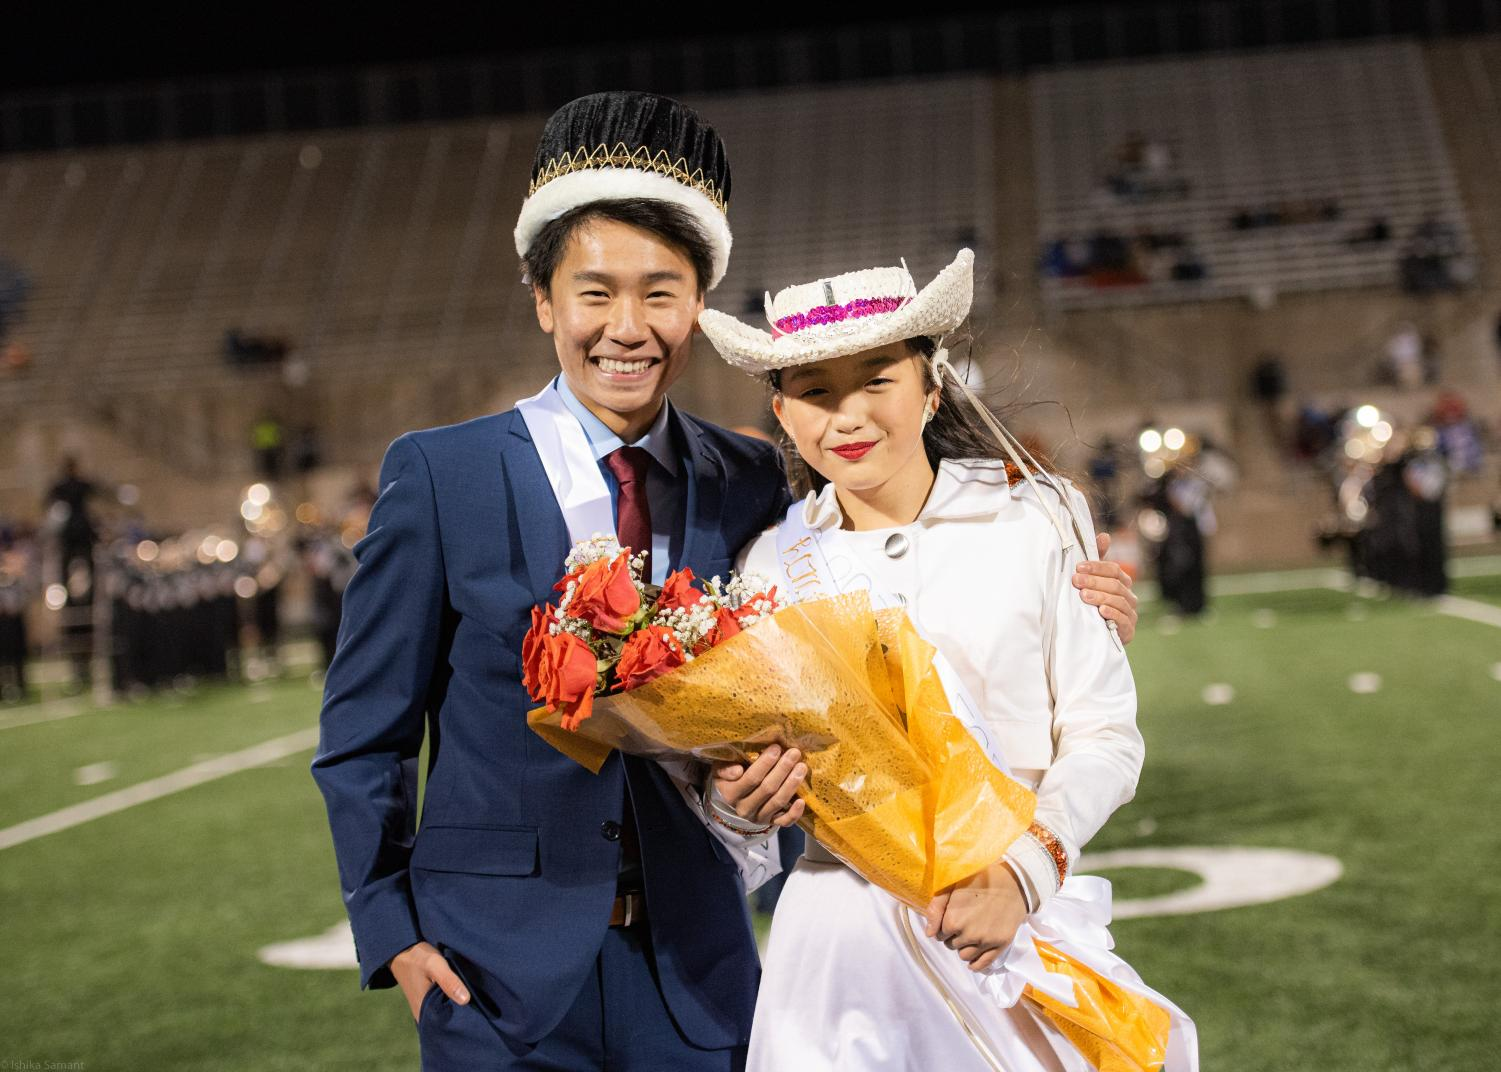 Homecoming+King+and+Queen%2C+Brandon+Qin+%2720+and+Ashley+Zhang+%2720+pose+for+the+photographers+after+winning+the+title.+Homecoming+started+in+colleges+celebrating+the+first+game+of+the+season+in+which+alumni+could+return+for+their+alma+maters.